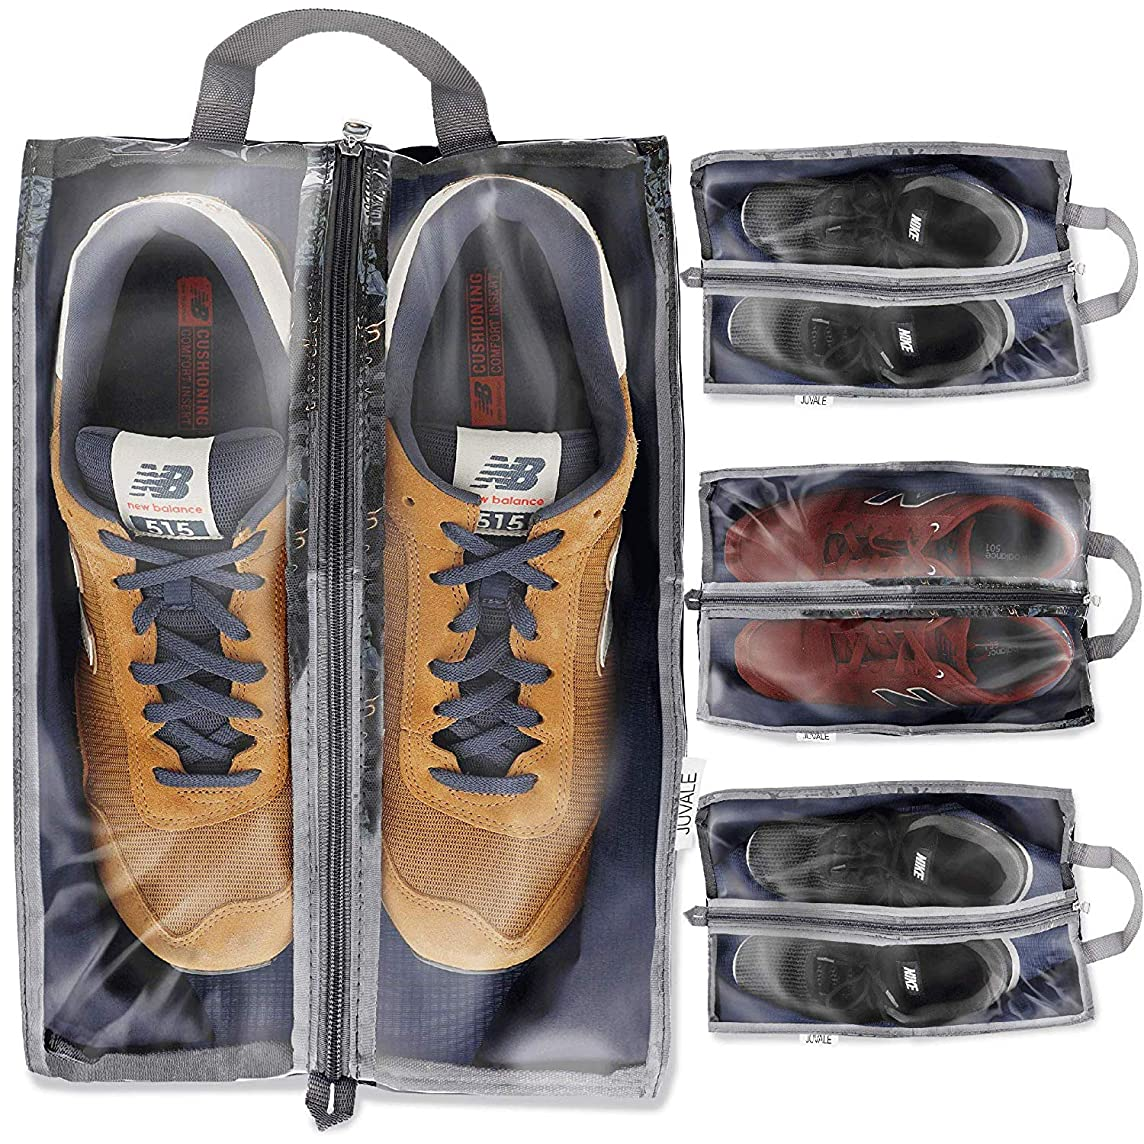 Juvale Portable Shoe Tote Bags for Travel and Storage